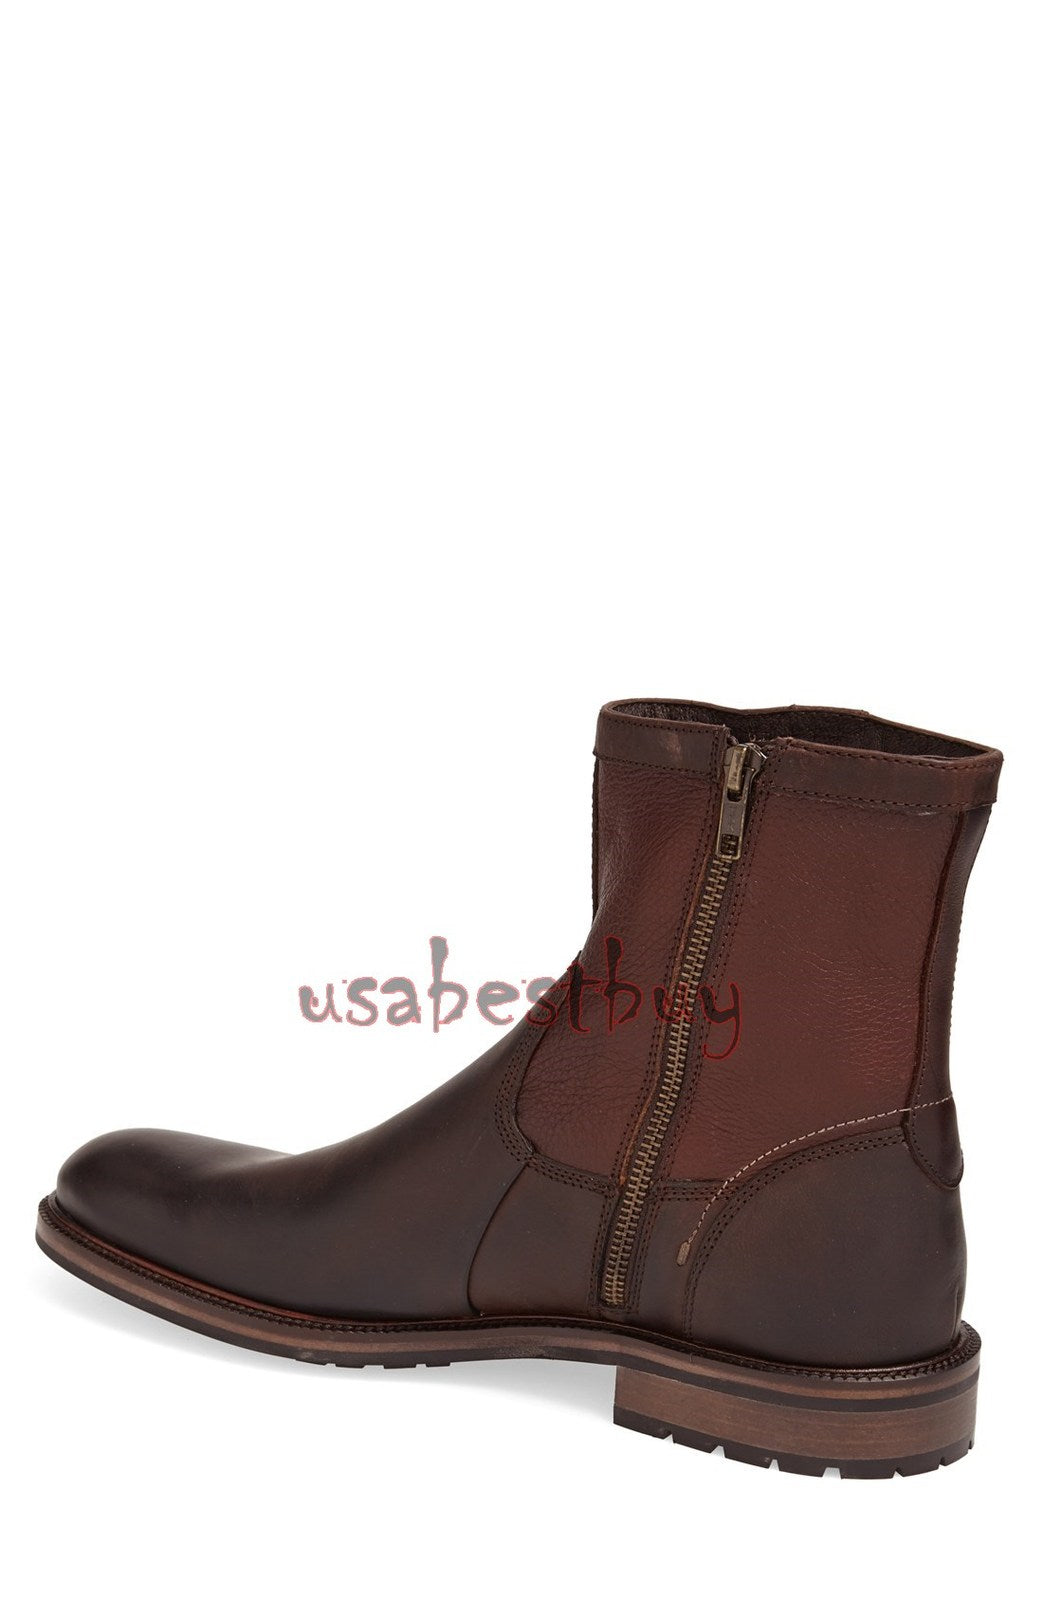 New Handmade Simple Style Brown Leather Ankle Boots, Men Stylish leather boots